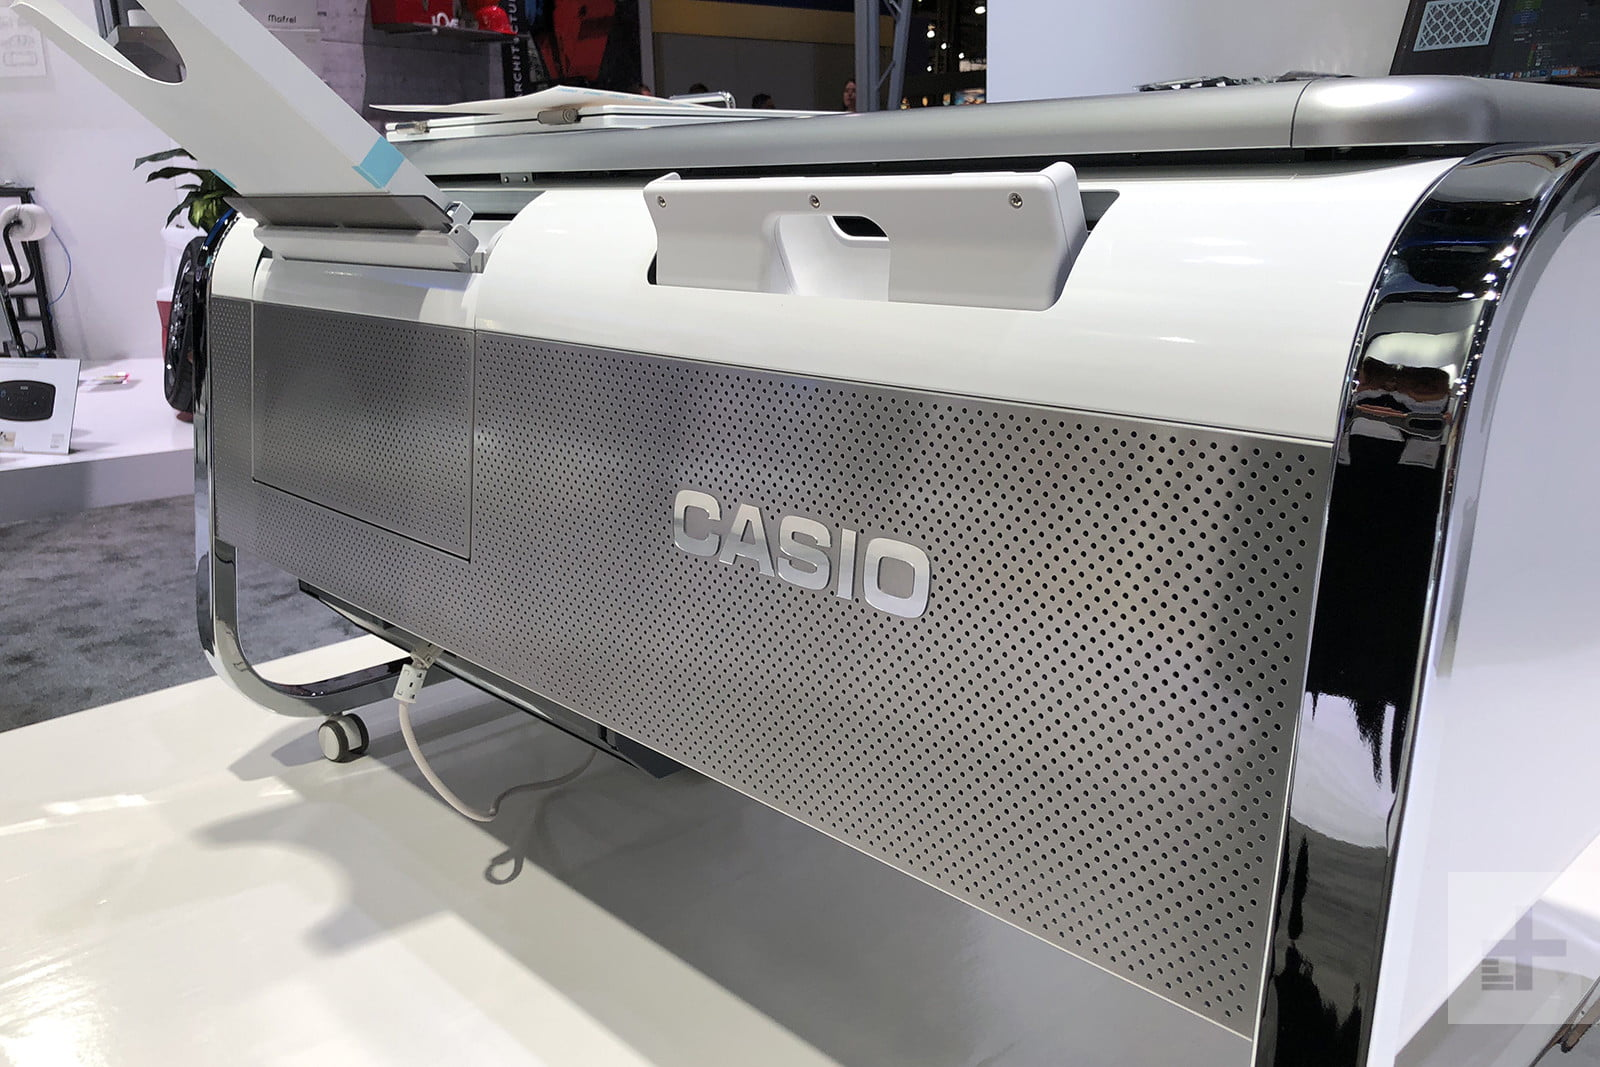 casio mofrel 25d printer ces2018 image uploaded from ios 8